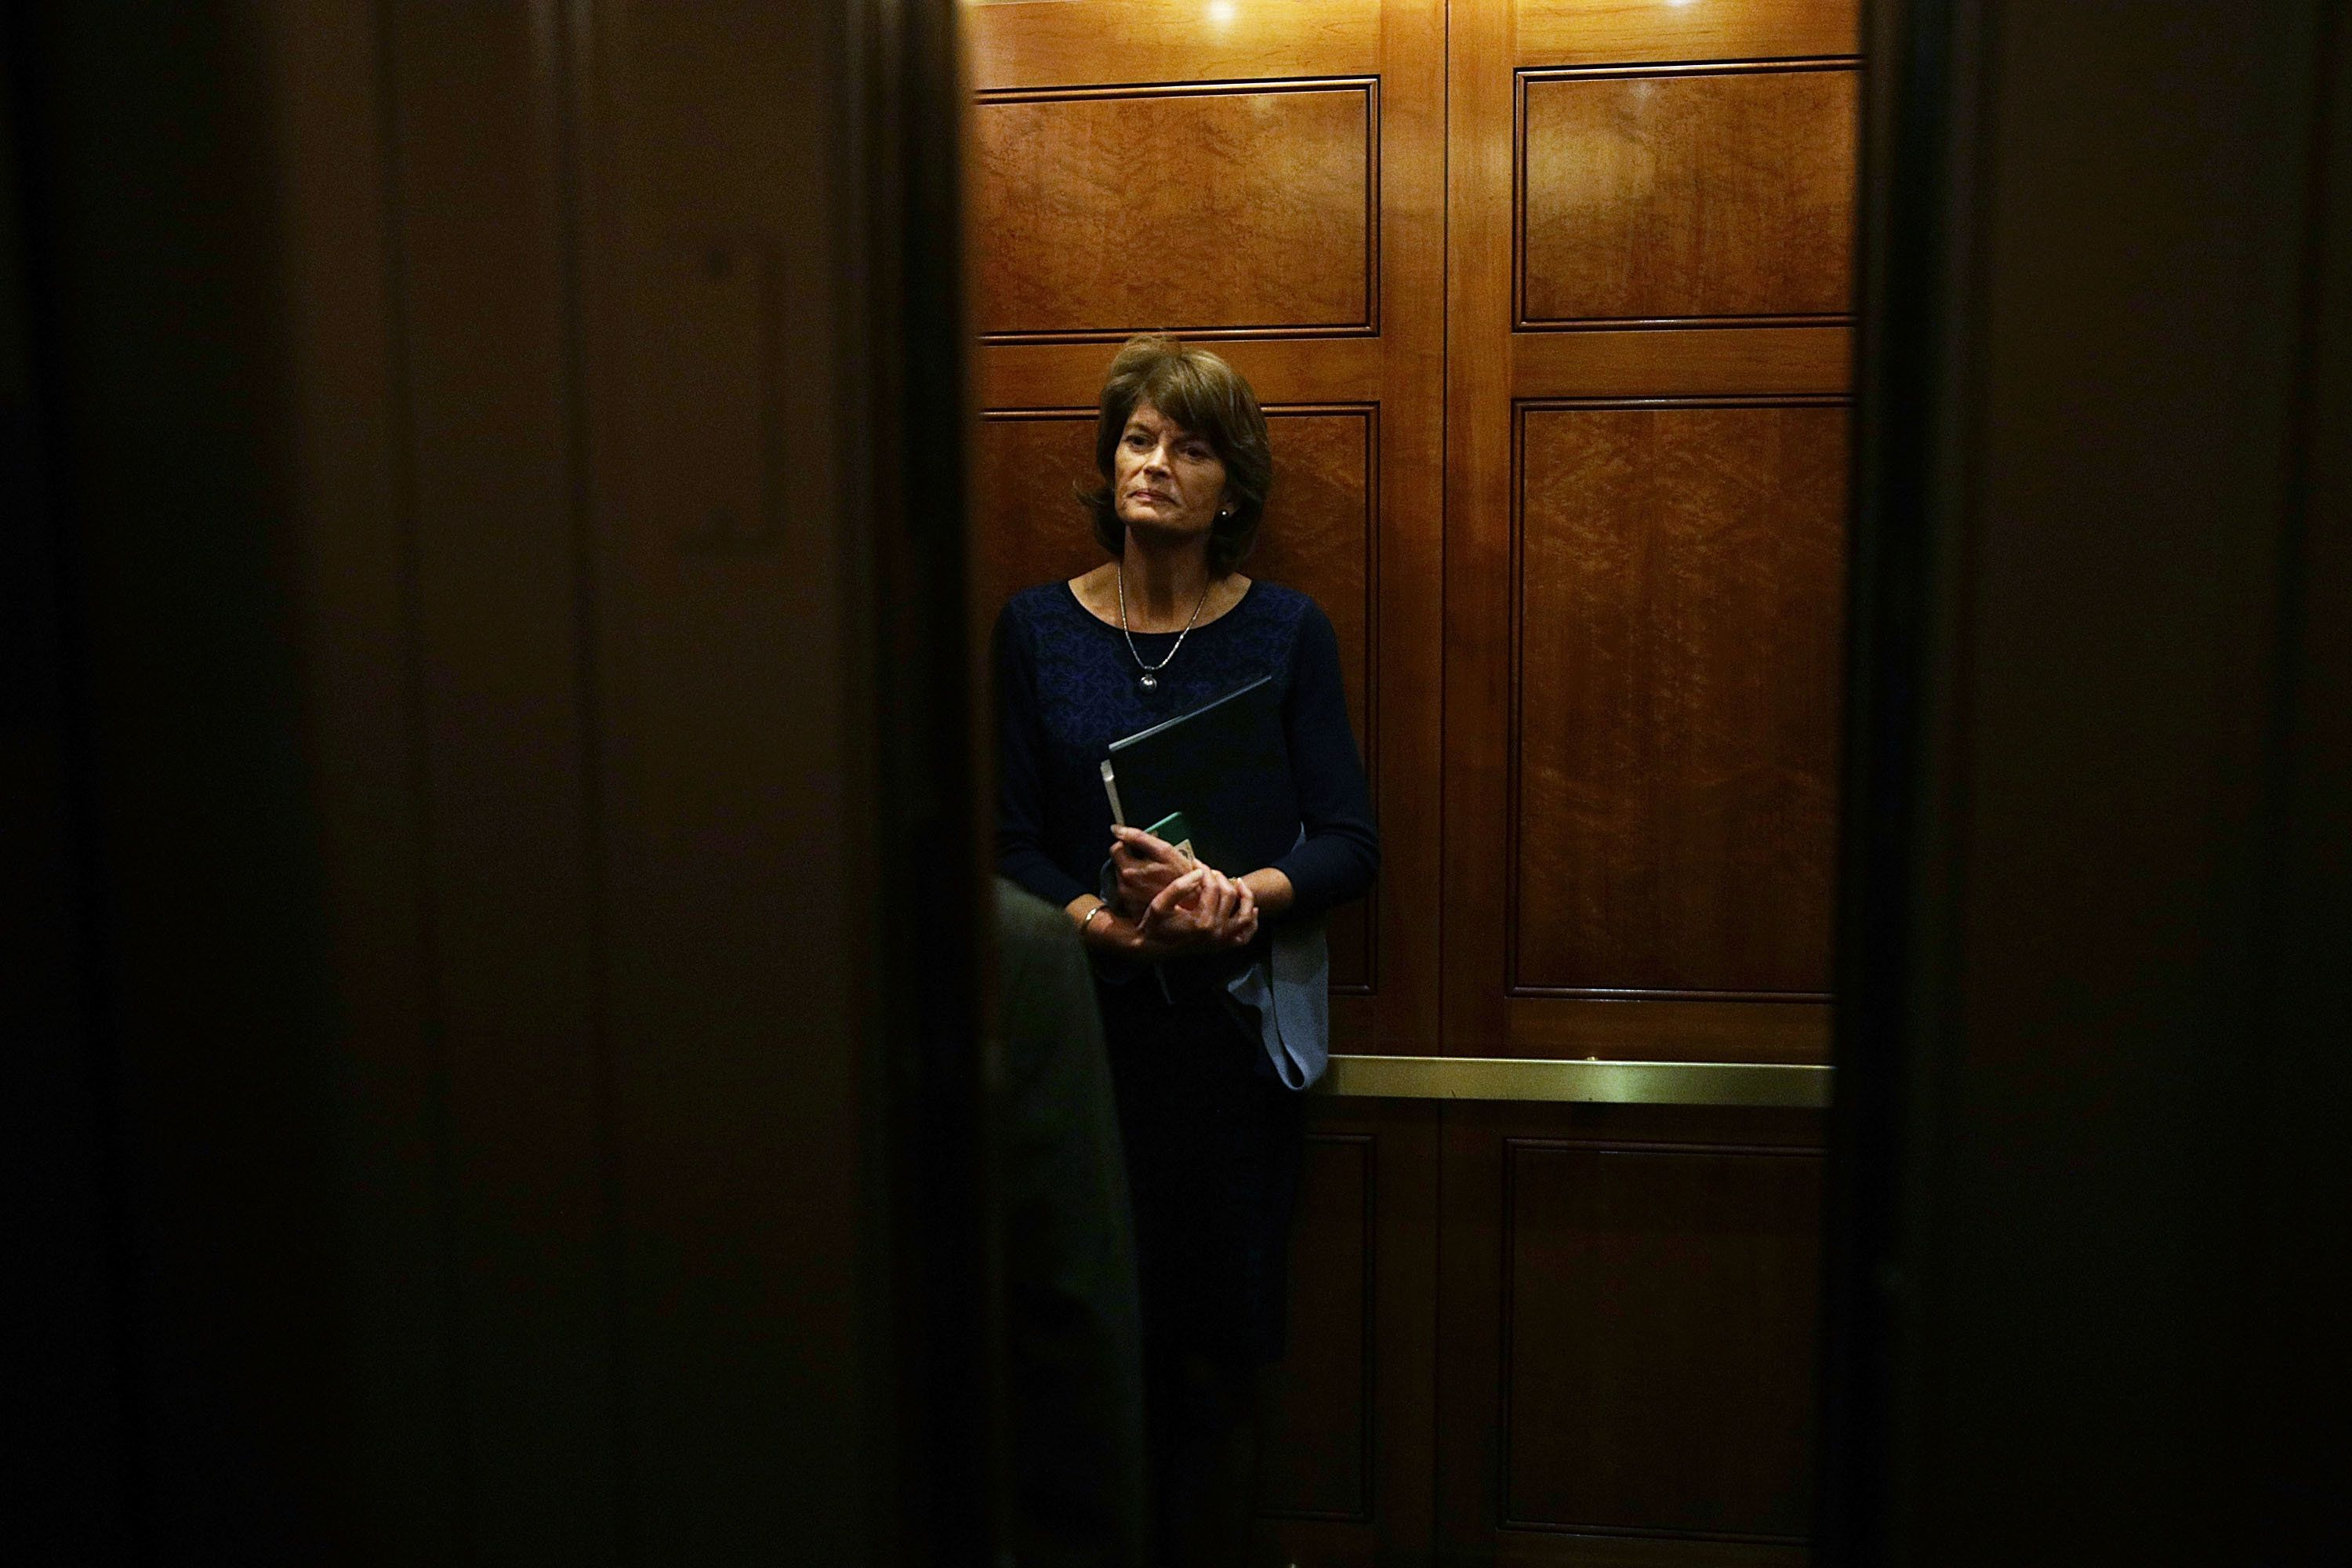 U.S. Sen. Lisa Murkowski (R-AK) leaves after a vote in an elevator at the Capitol February 1, 2017 in Washington, DC.